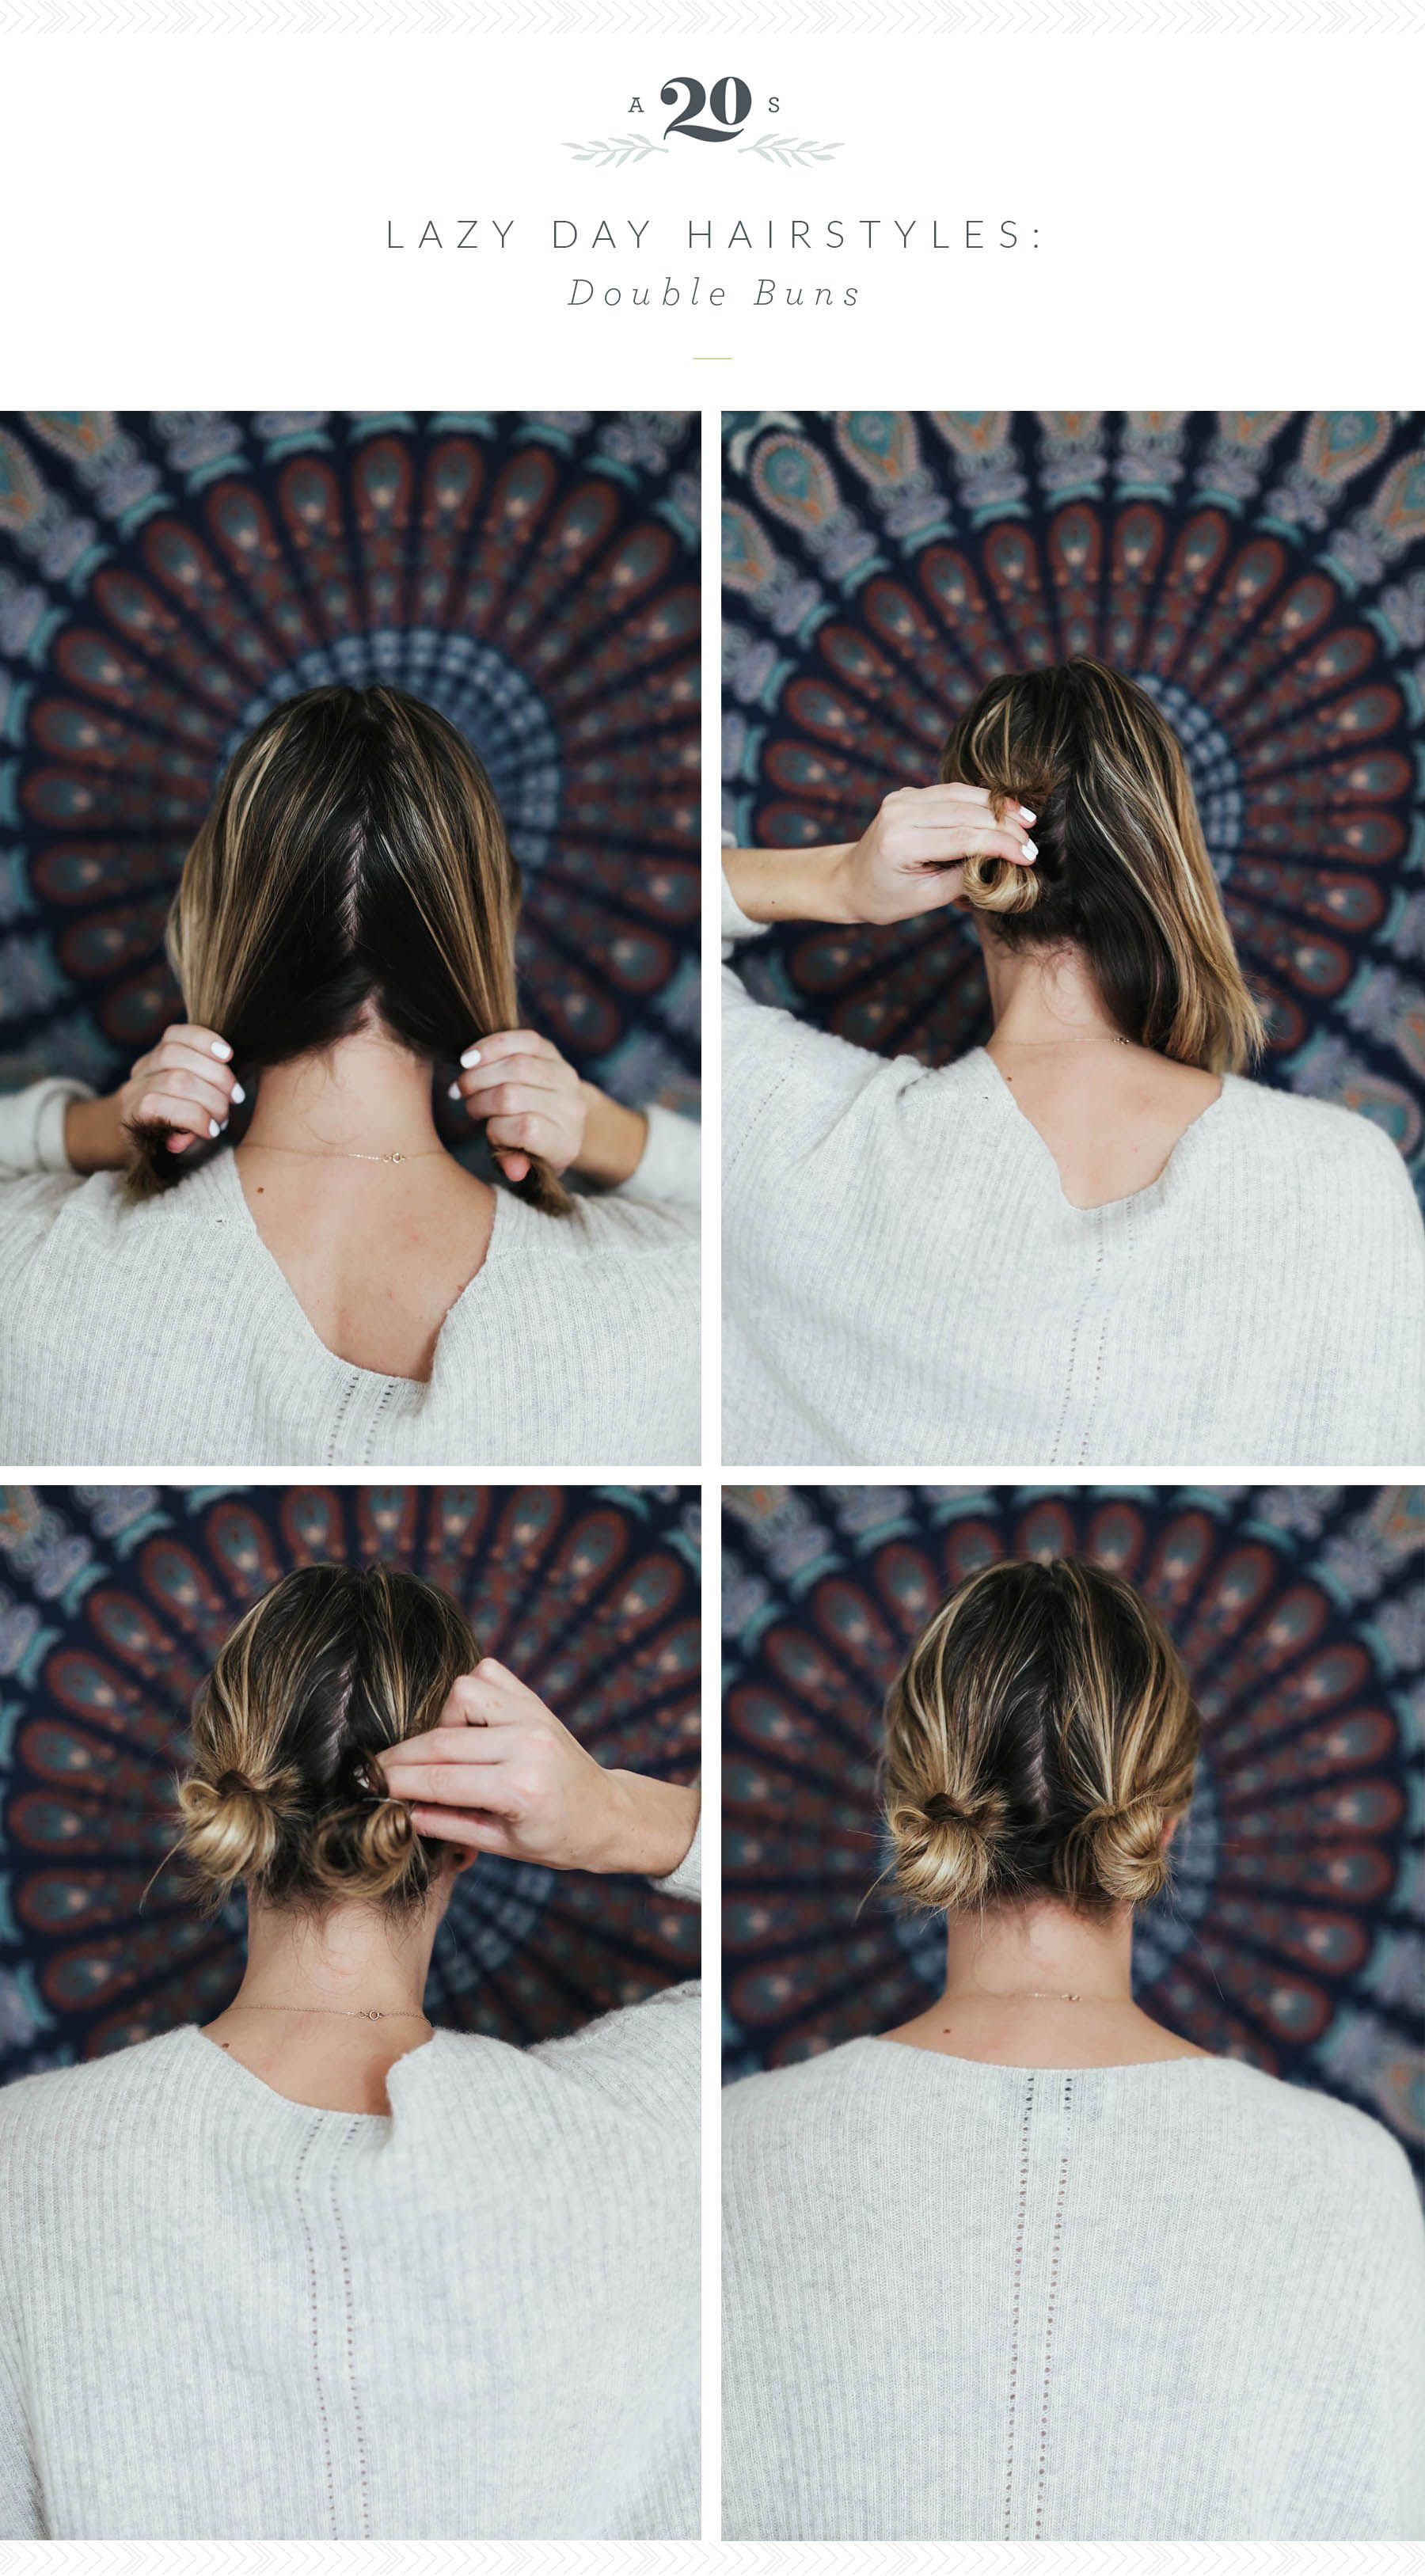 3 Easy Hairstyles For Lazy Days Lazy Girl Hairstyles Short Hair Styles Easy Cute Lazy Hairstyles